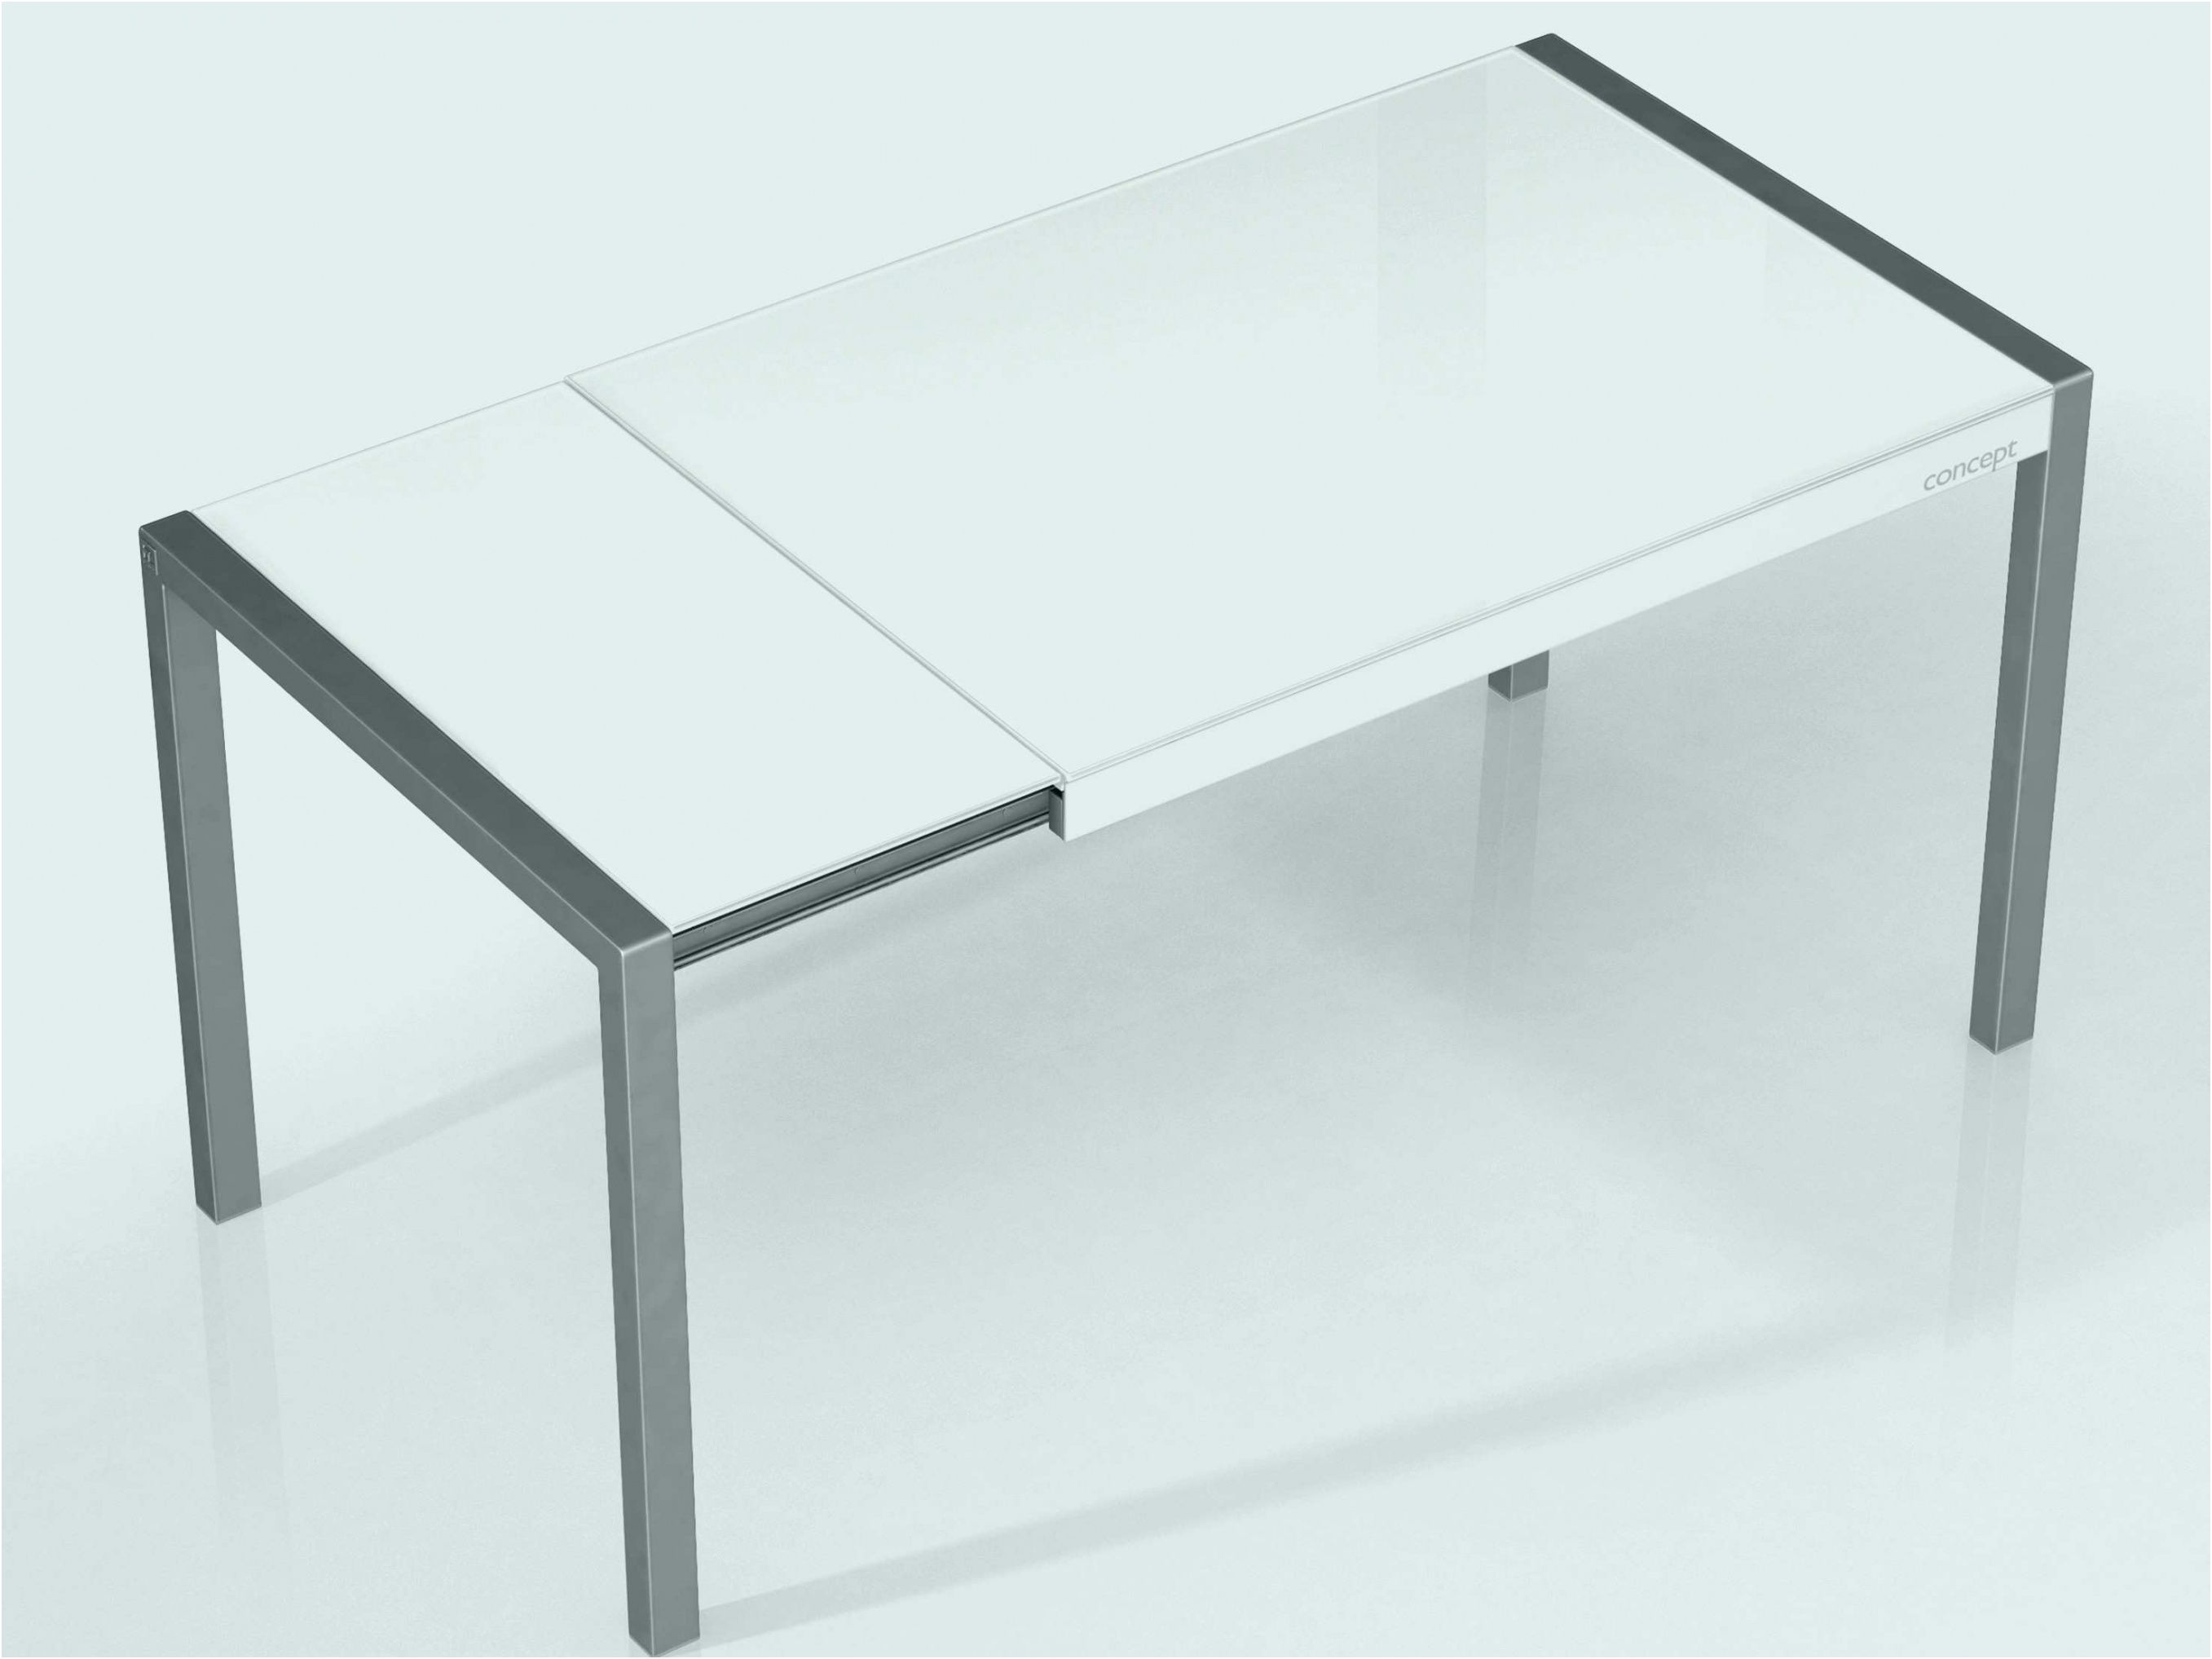 14 Excellent Table Blanche Ikea Image